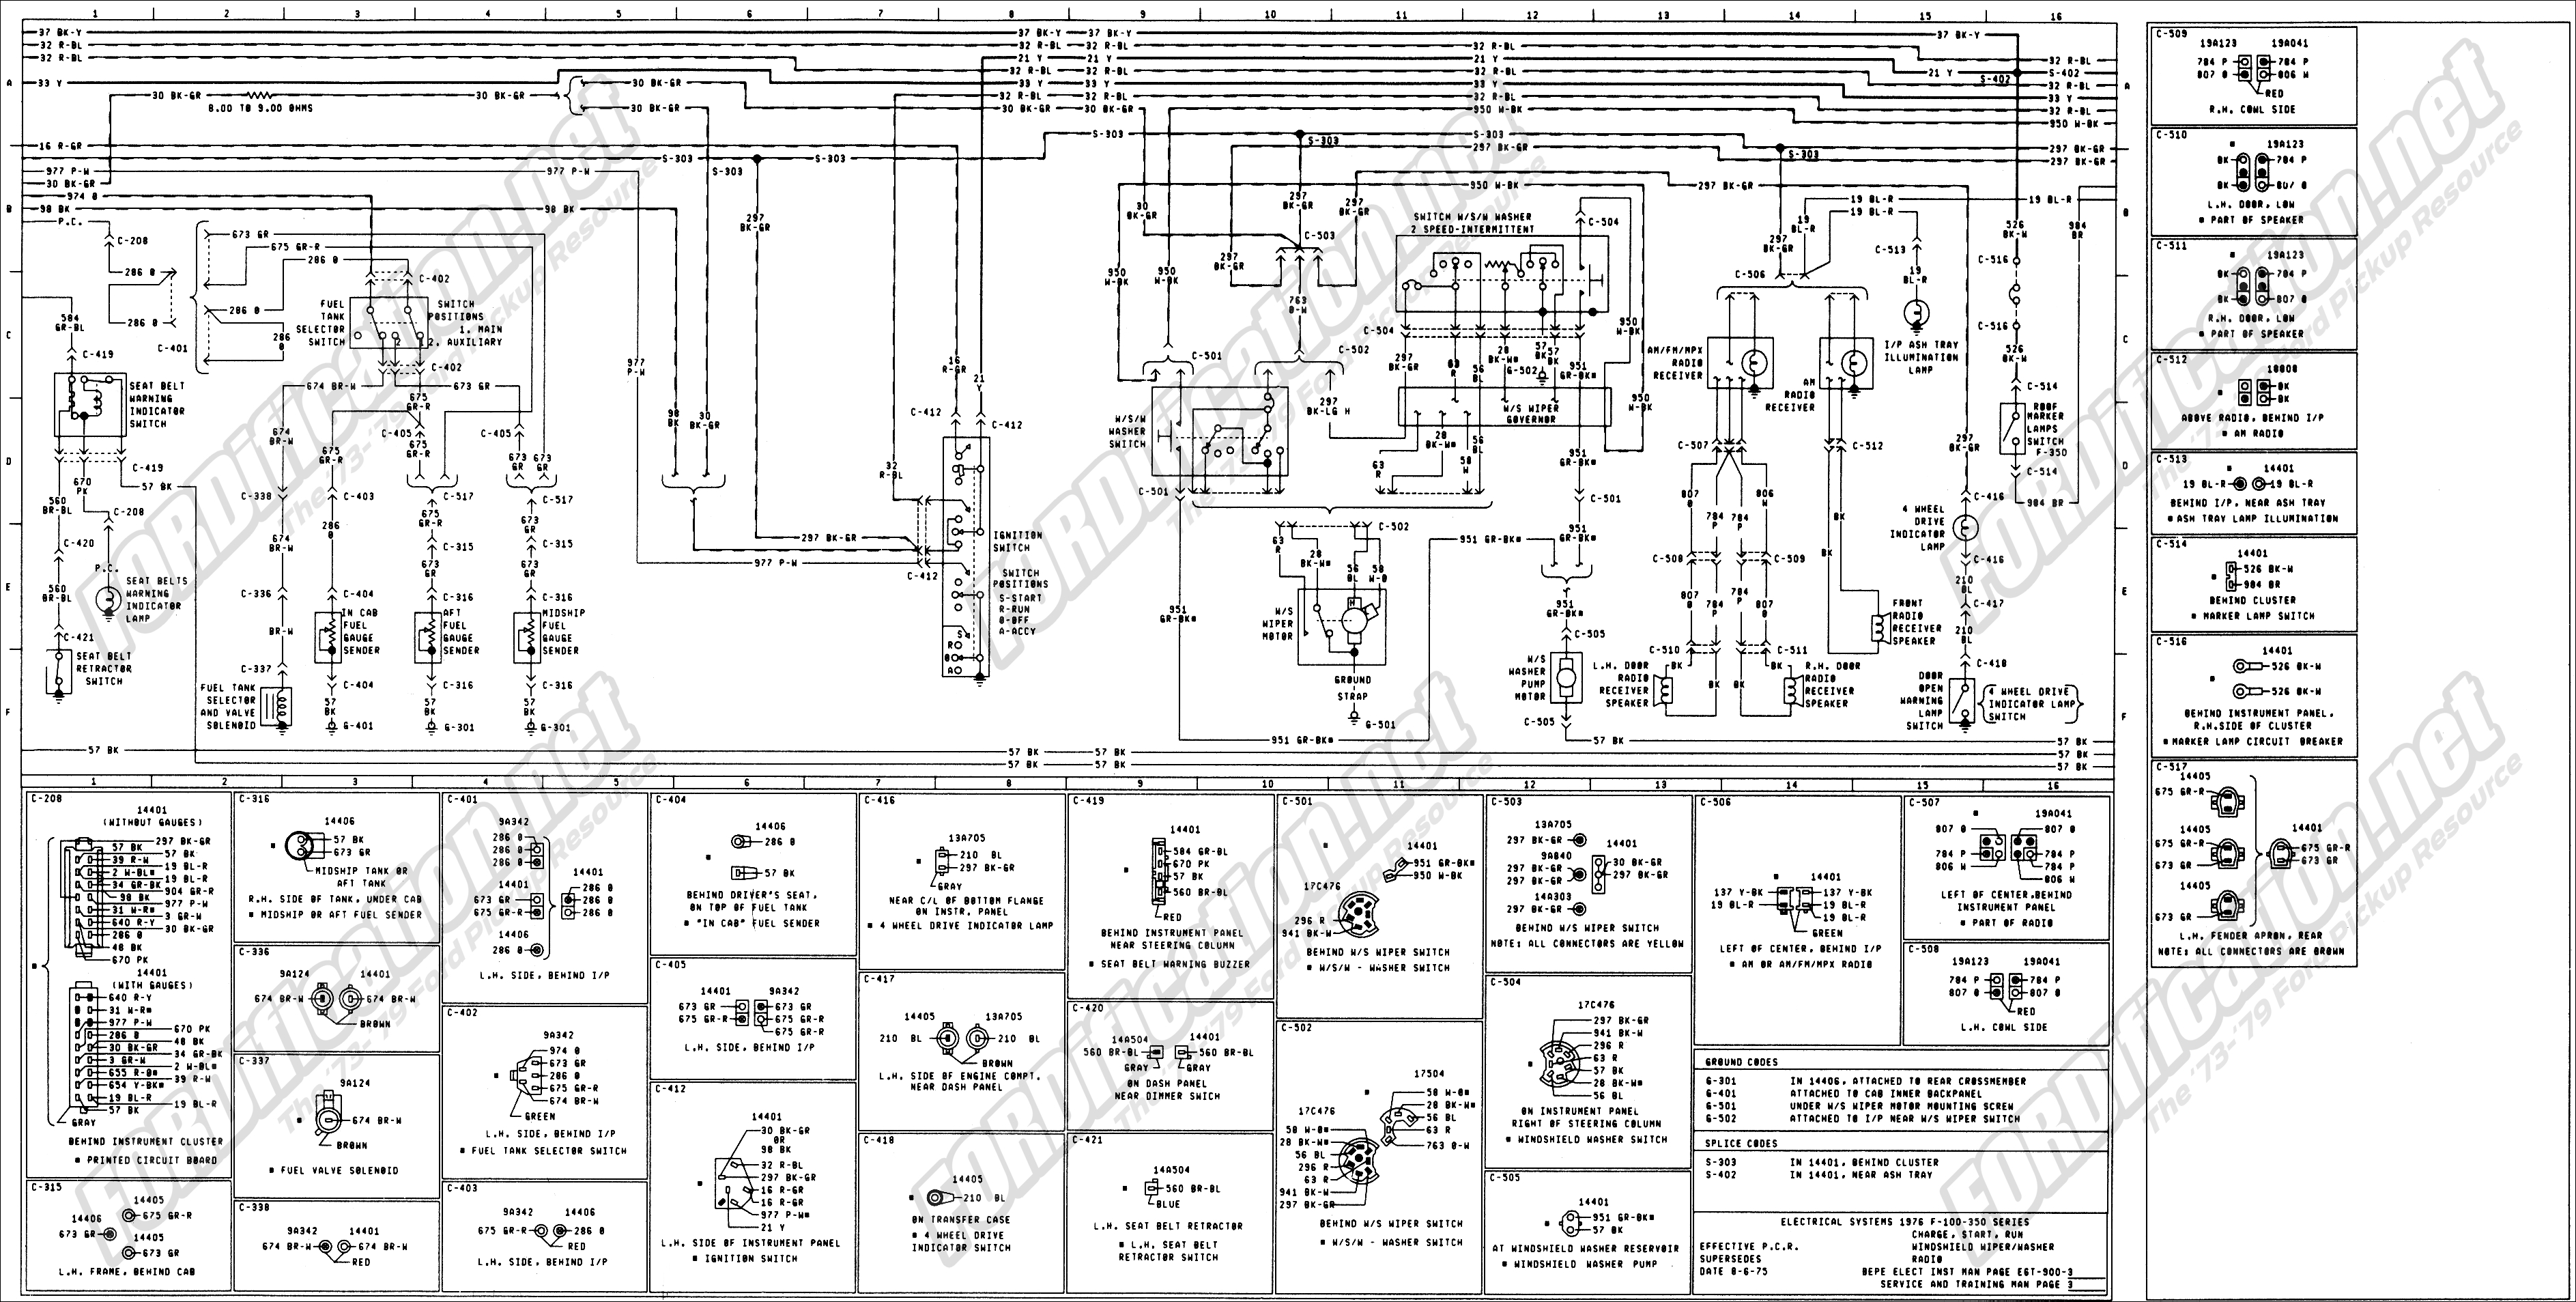 2002 Ford F250 Trailer Wiring Diagram | Trailer Wiring Diagram  Ford F Wiring Diagrams on ford 250 wiring diagram, ford bronco wiring diagram, ford truck wiring diagrams, ford f500 wiring diagram, ford explorer wiring diagram, ford mustang wiring diagram, dodge dakota wiring diagram, dodge ram wiring diagram, ford super duty wiring diagram, ford fairlane wiring diagram, ford v10 wiring diagram, 1989 ford wiring diagram, 86 ford wiring diagram, ford f100 wiring diagram, ford econoline van wiring diagram, ford power window switch wiring diagram, mercury milan wiring diagram, ford aerostar wiring diagram, yamaha f250 wiring diagram, 1999 f350 wiring diagram,